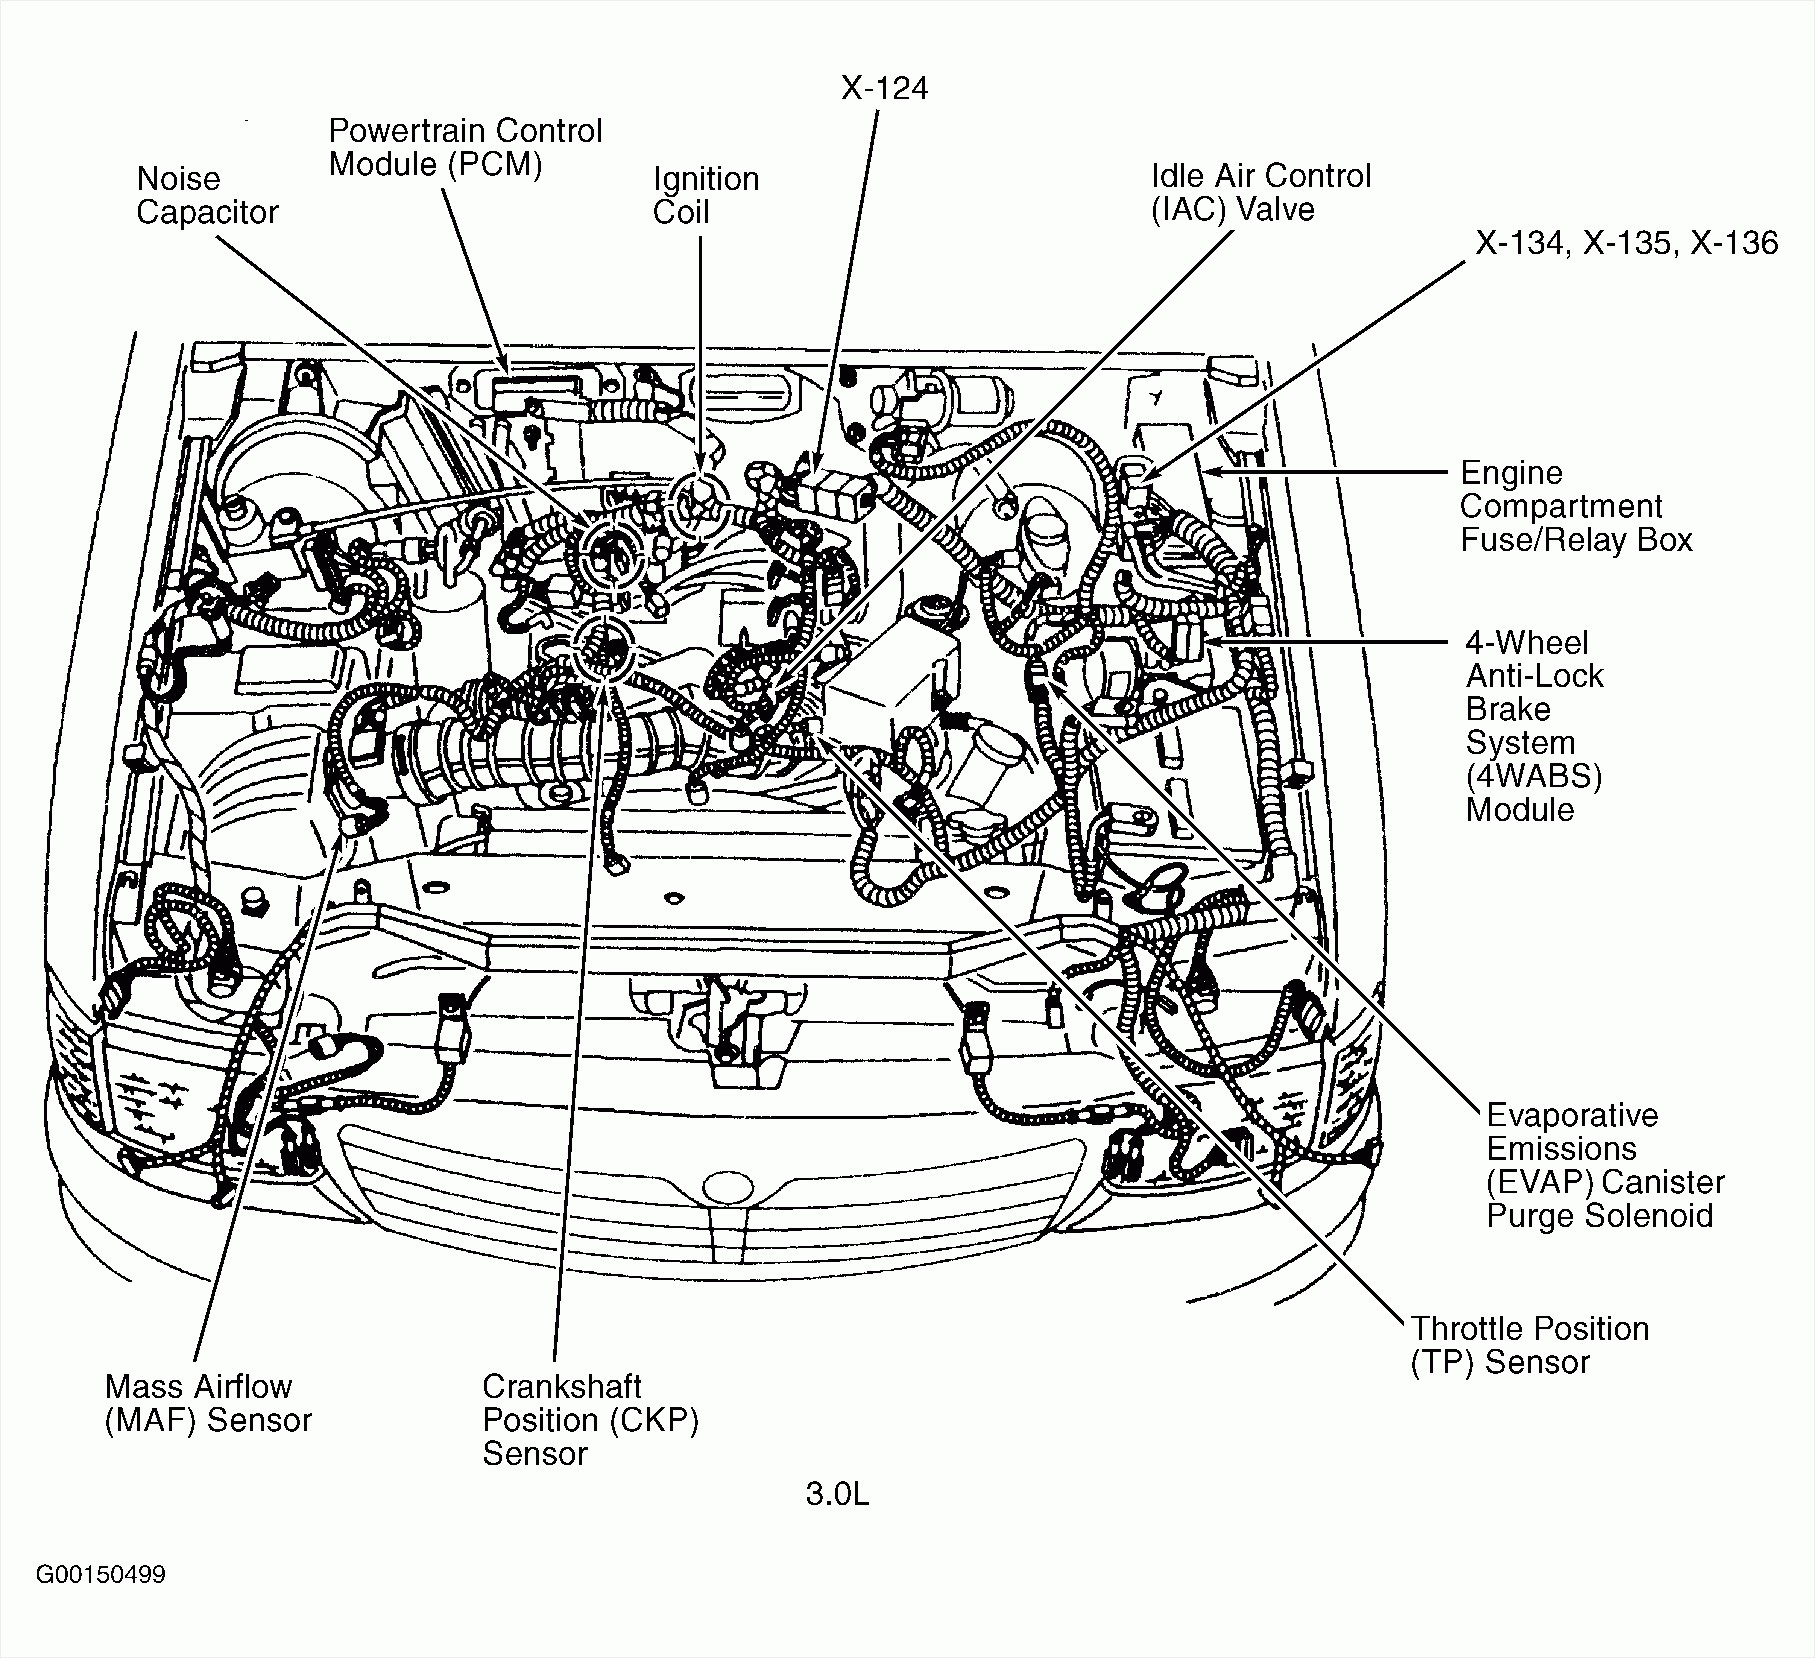 Alternator Wiring Diagram For 95 Mustang Gt